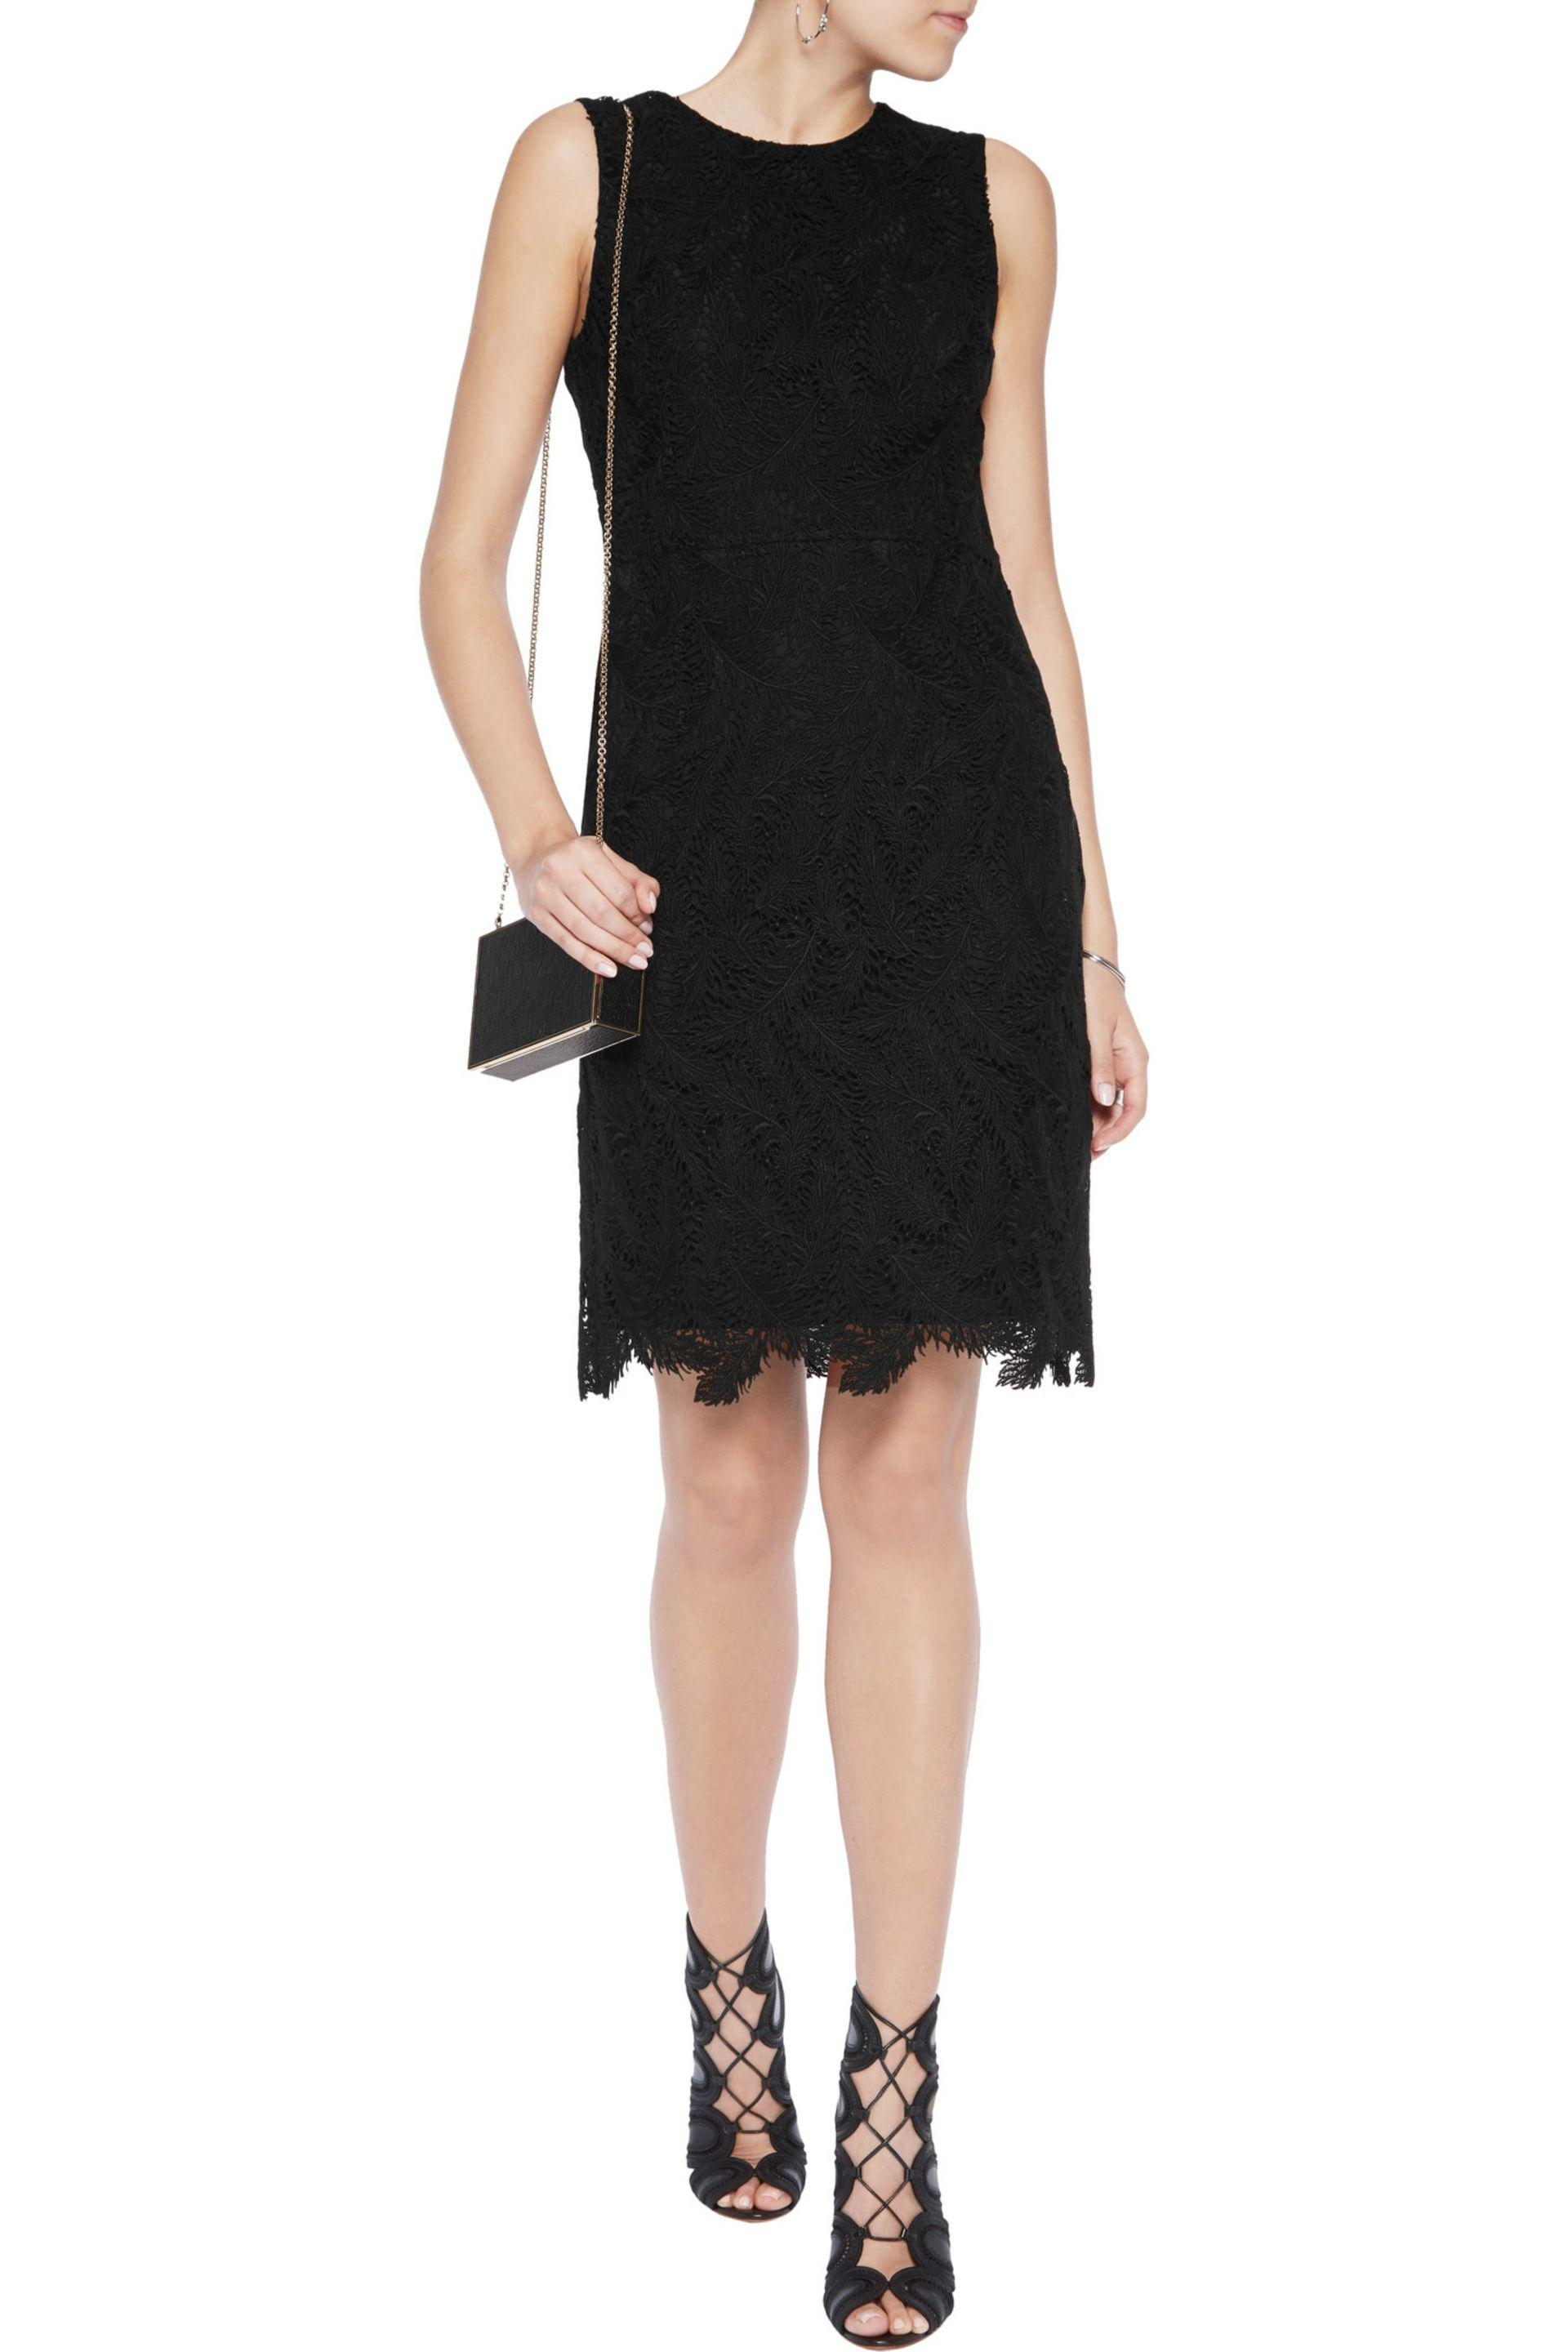 Emilio Pucci - Black Cotton-blend Macramé Lace Dress - Lyst. View Fullscreen